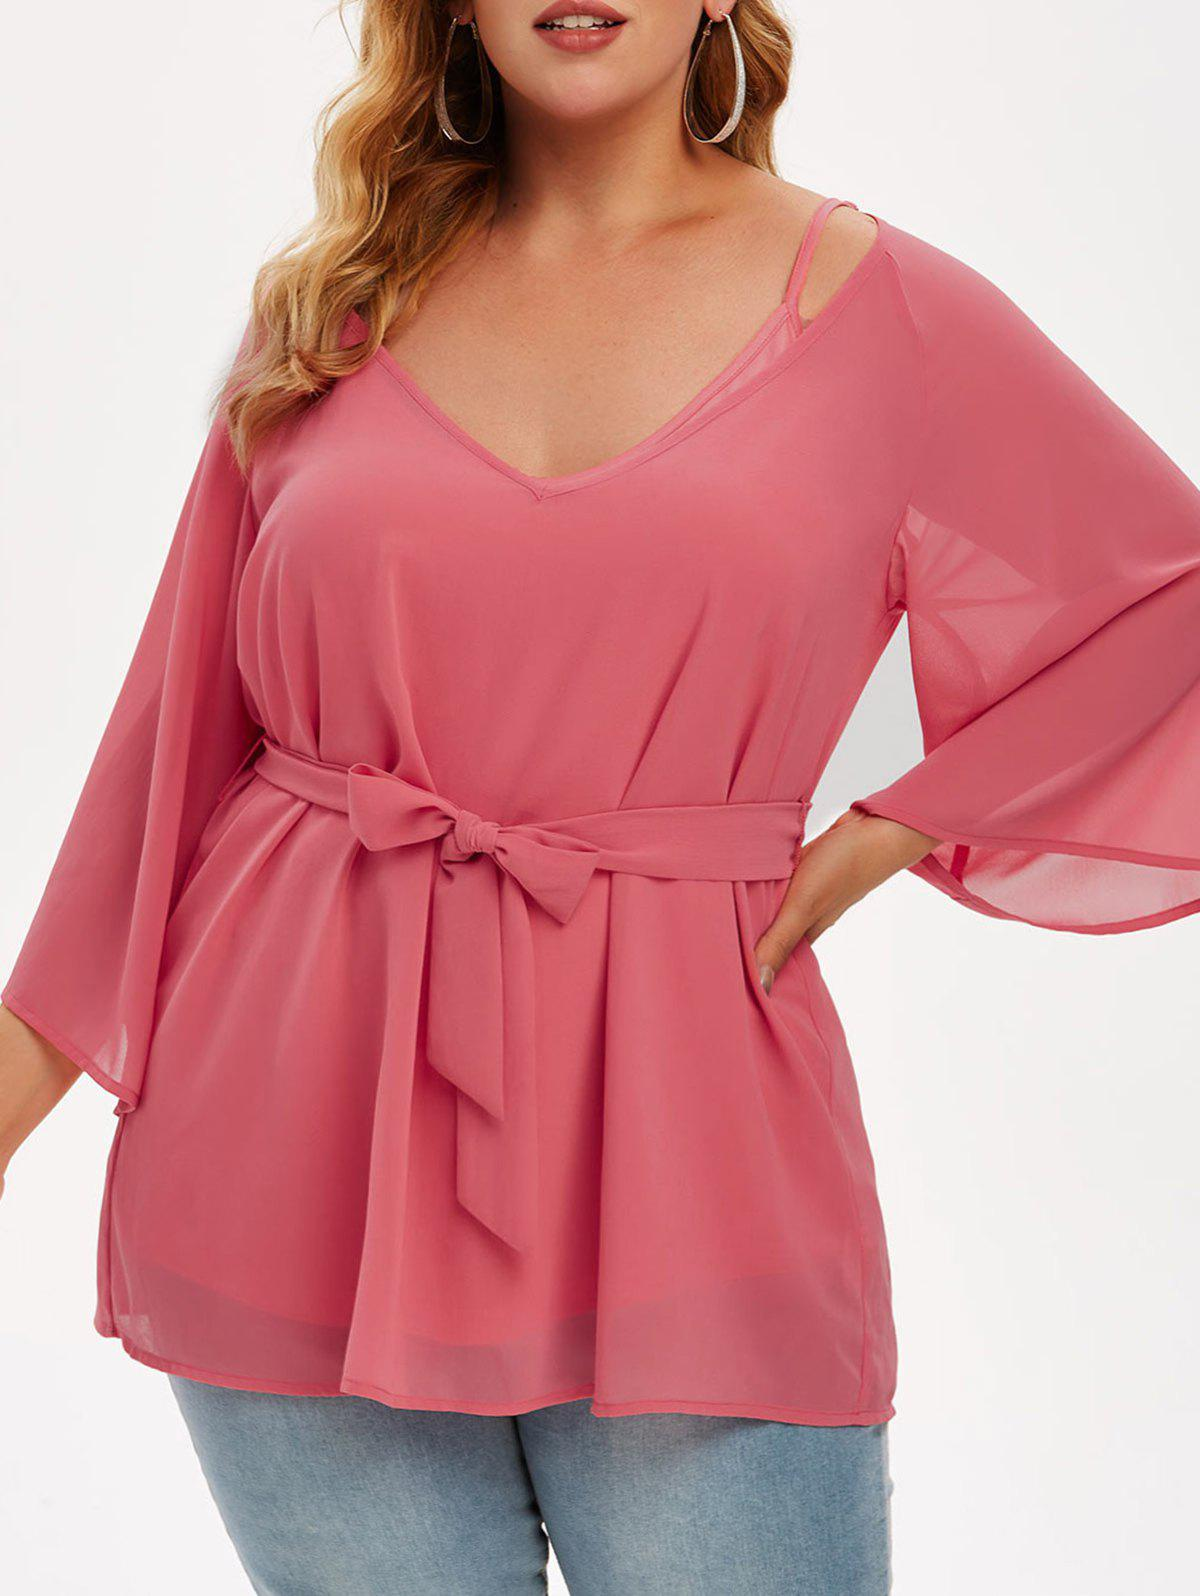 Plus Size Solid Cami Top And Chiffon Belted Blouse Set - LIGHT PINK 4X